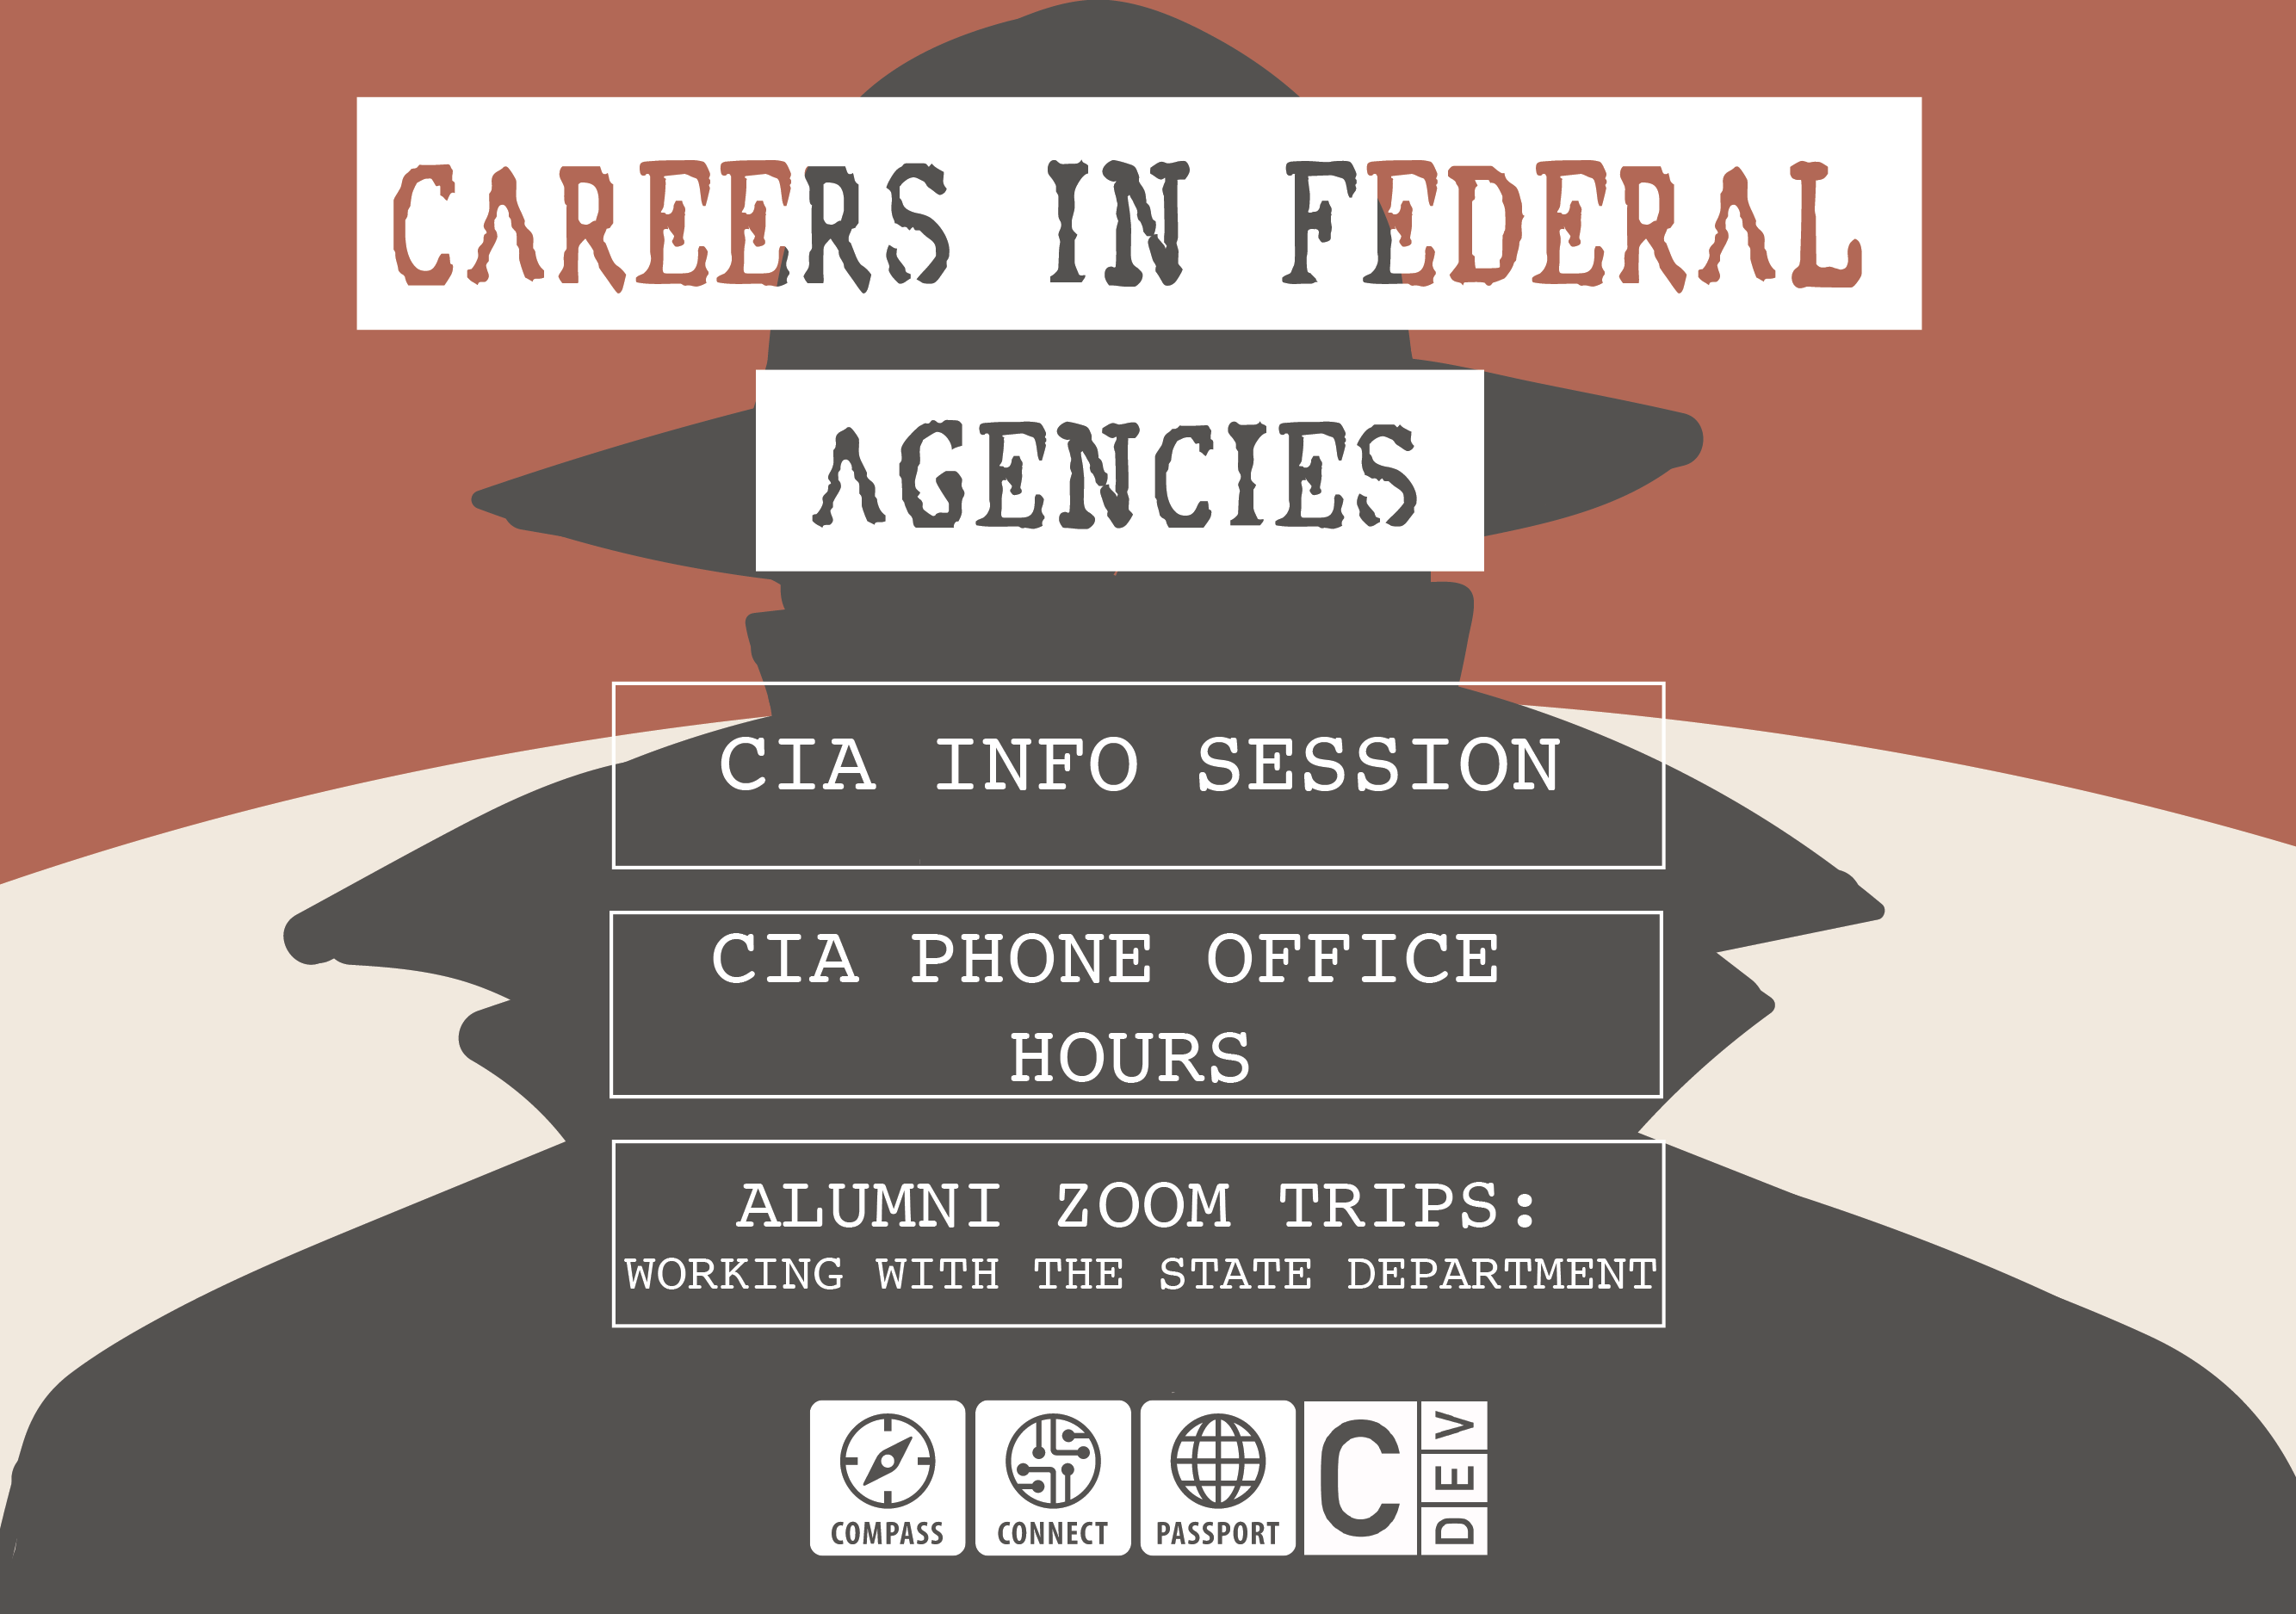 CIA Info Session Event Flyer